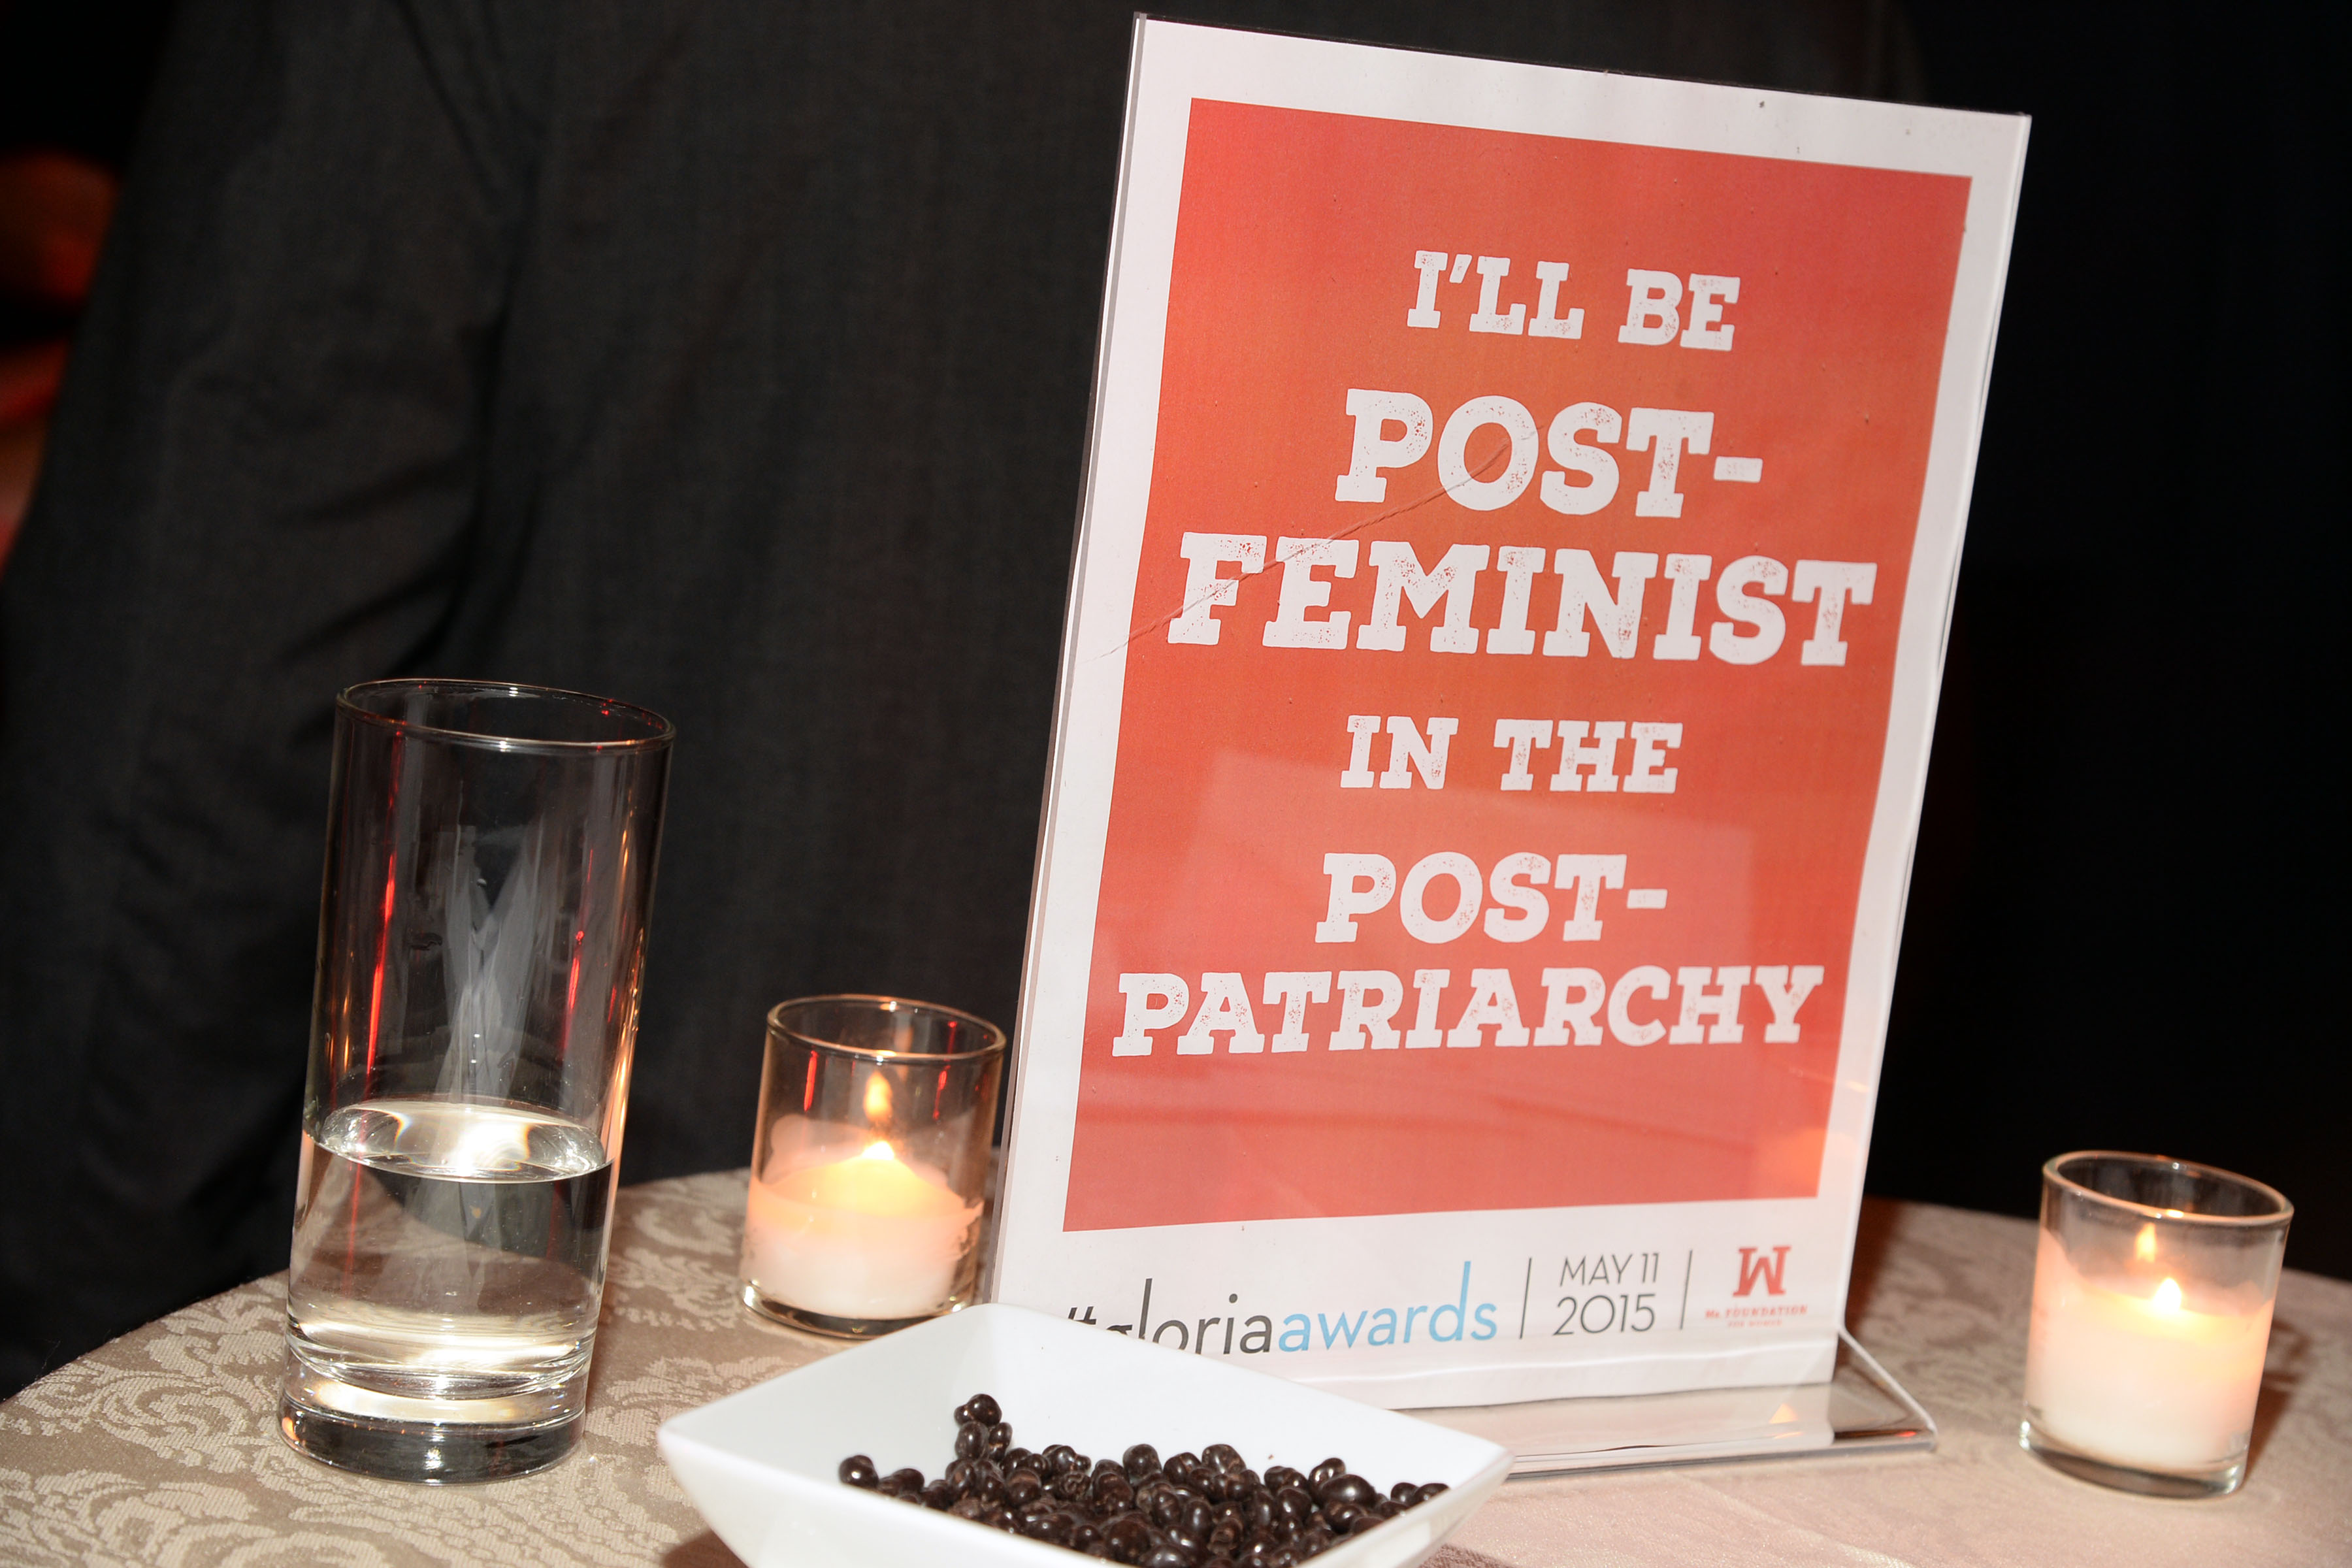 Feminist poster on event table with candles